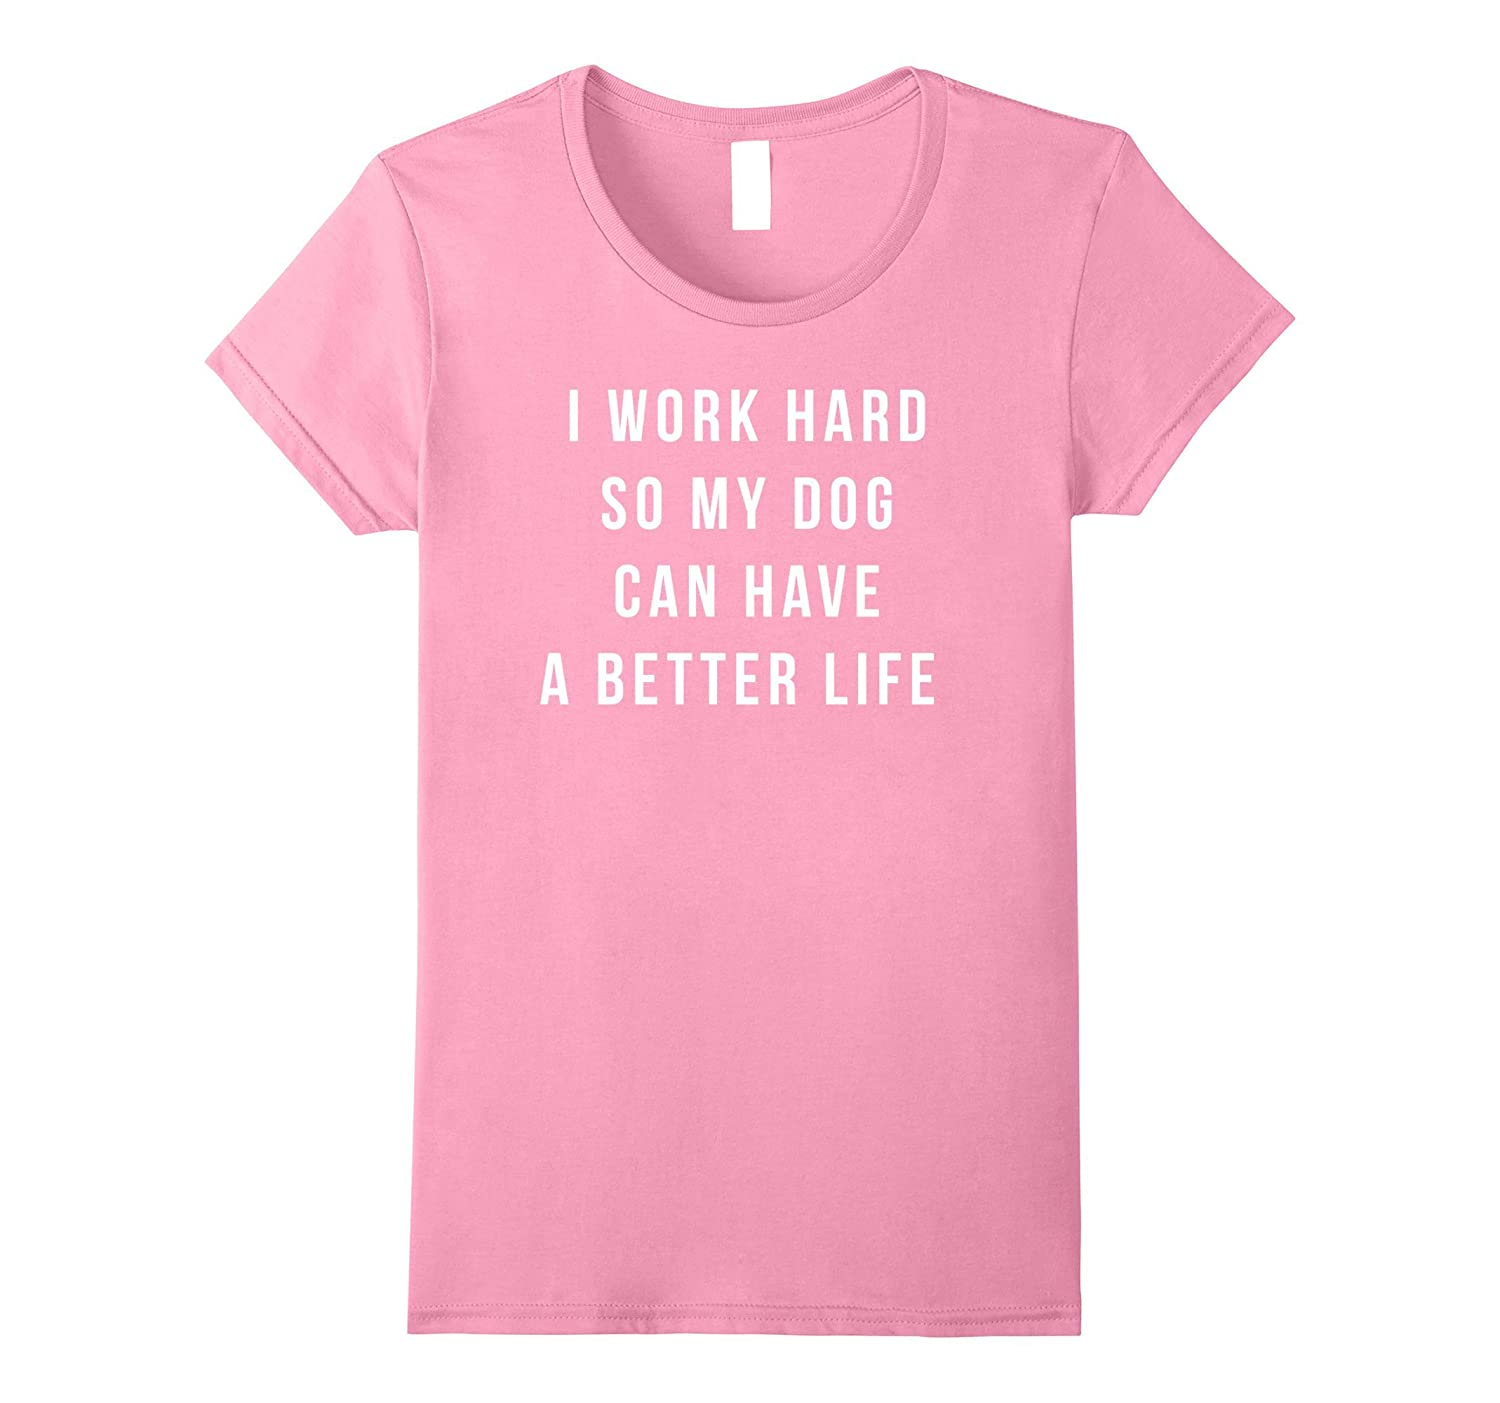 Womens Women's I Work Hard so my Dog Can Have a Better Life T-shirt-CL